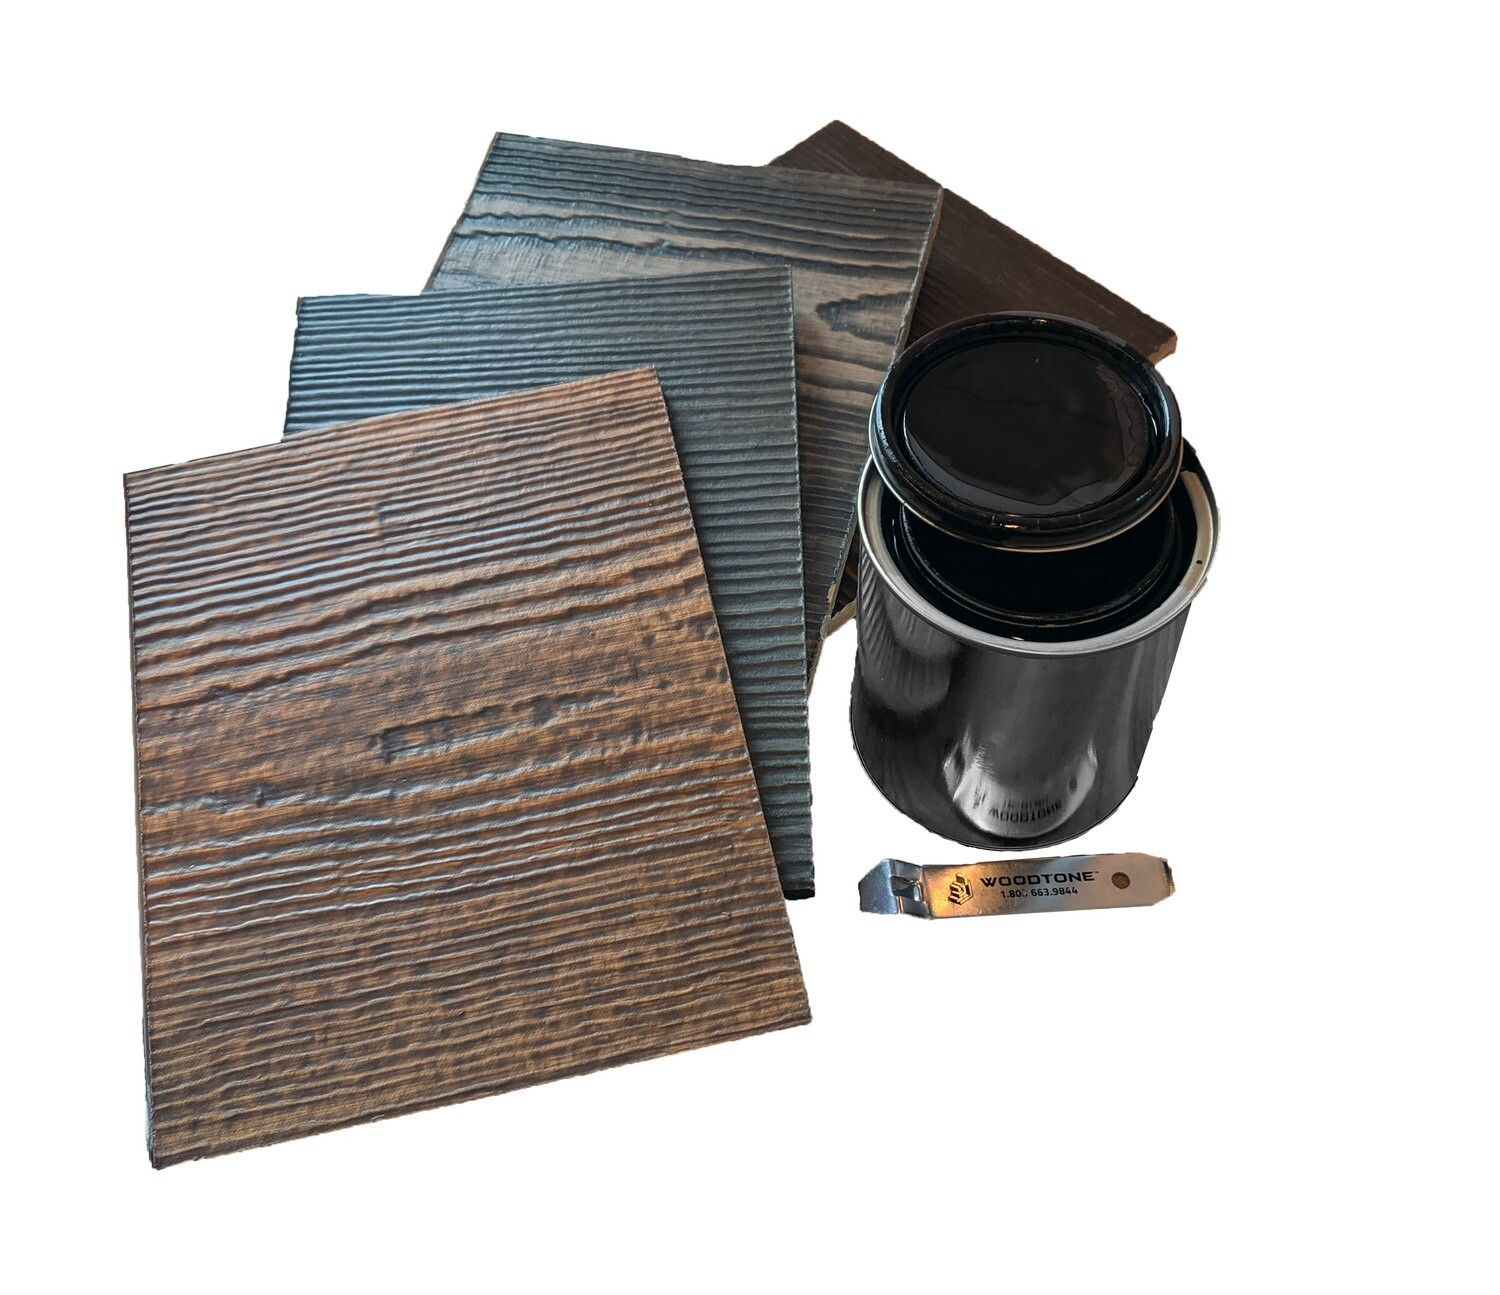 RusticSeries Touch-up Kit